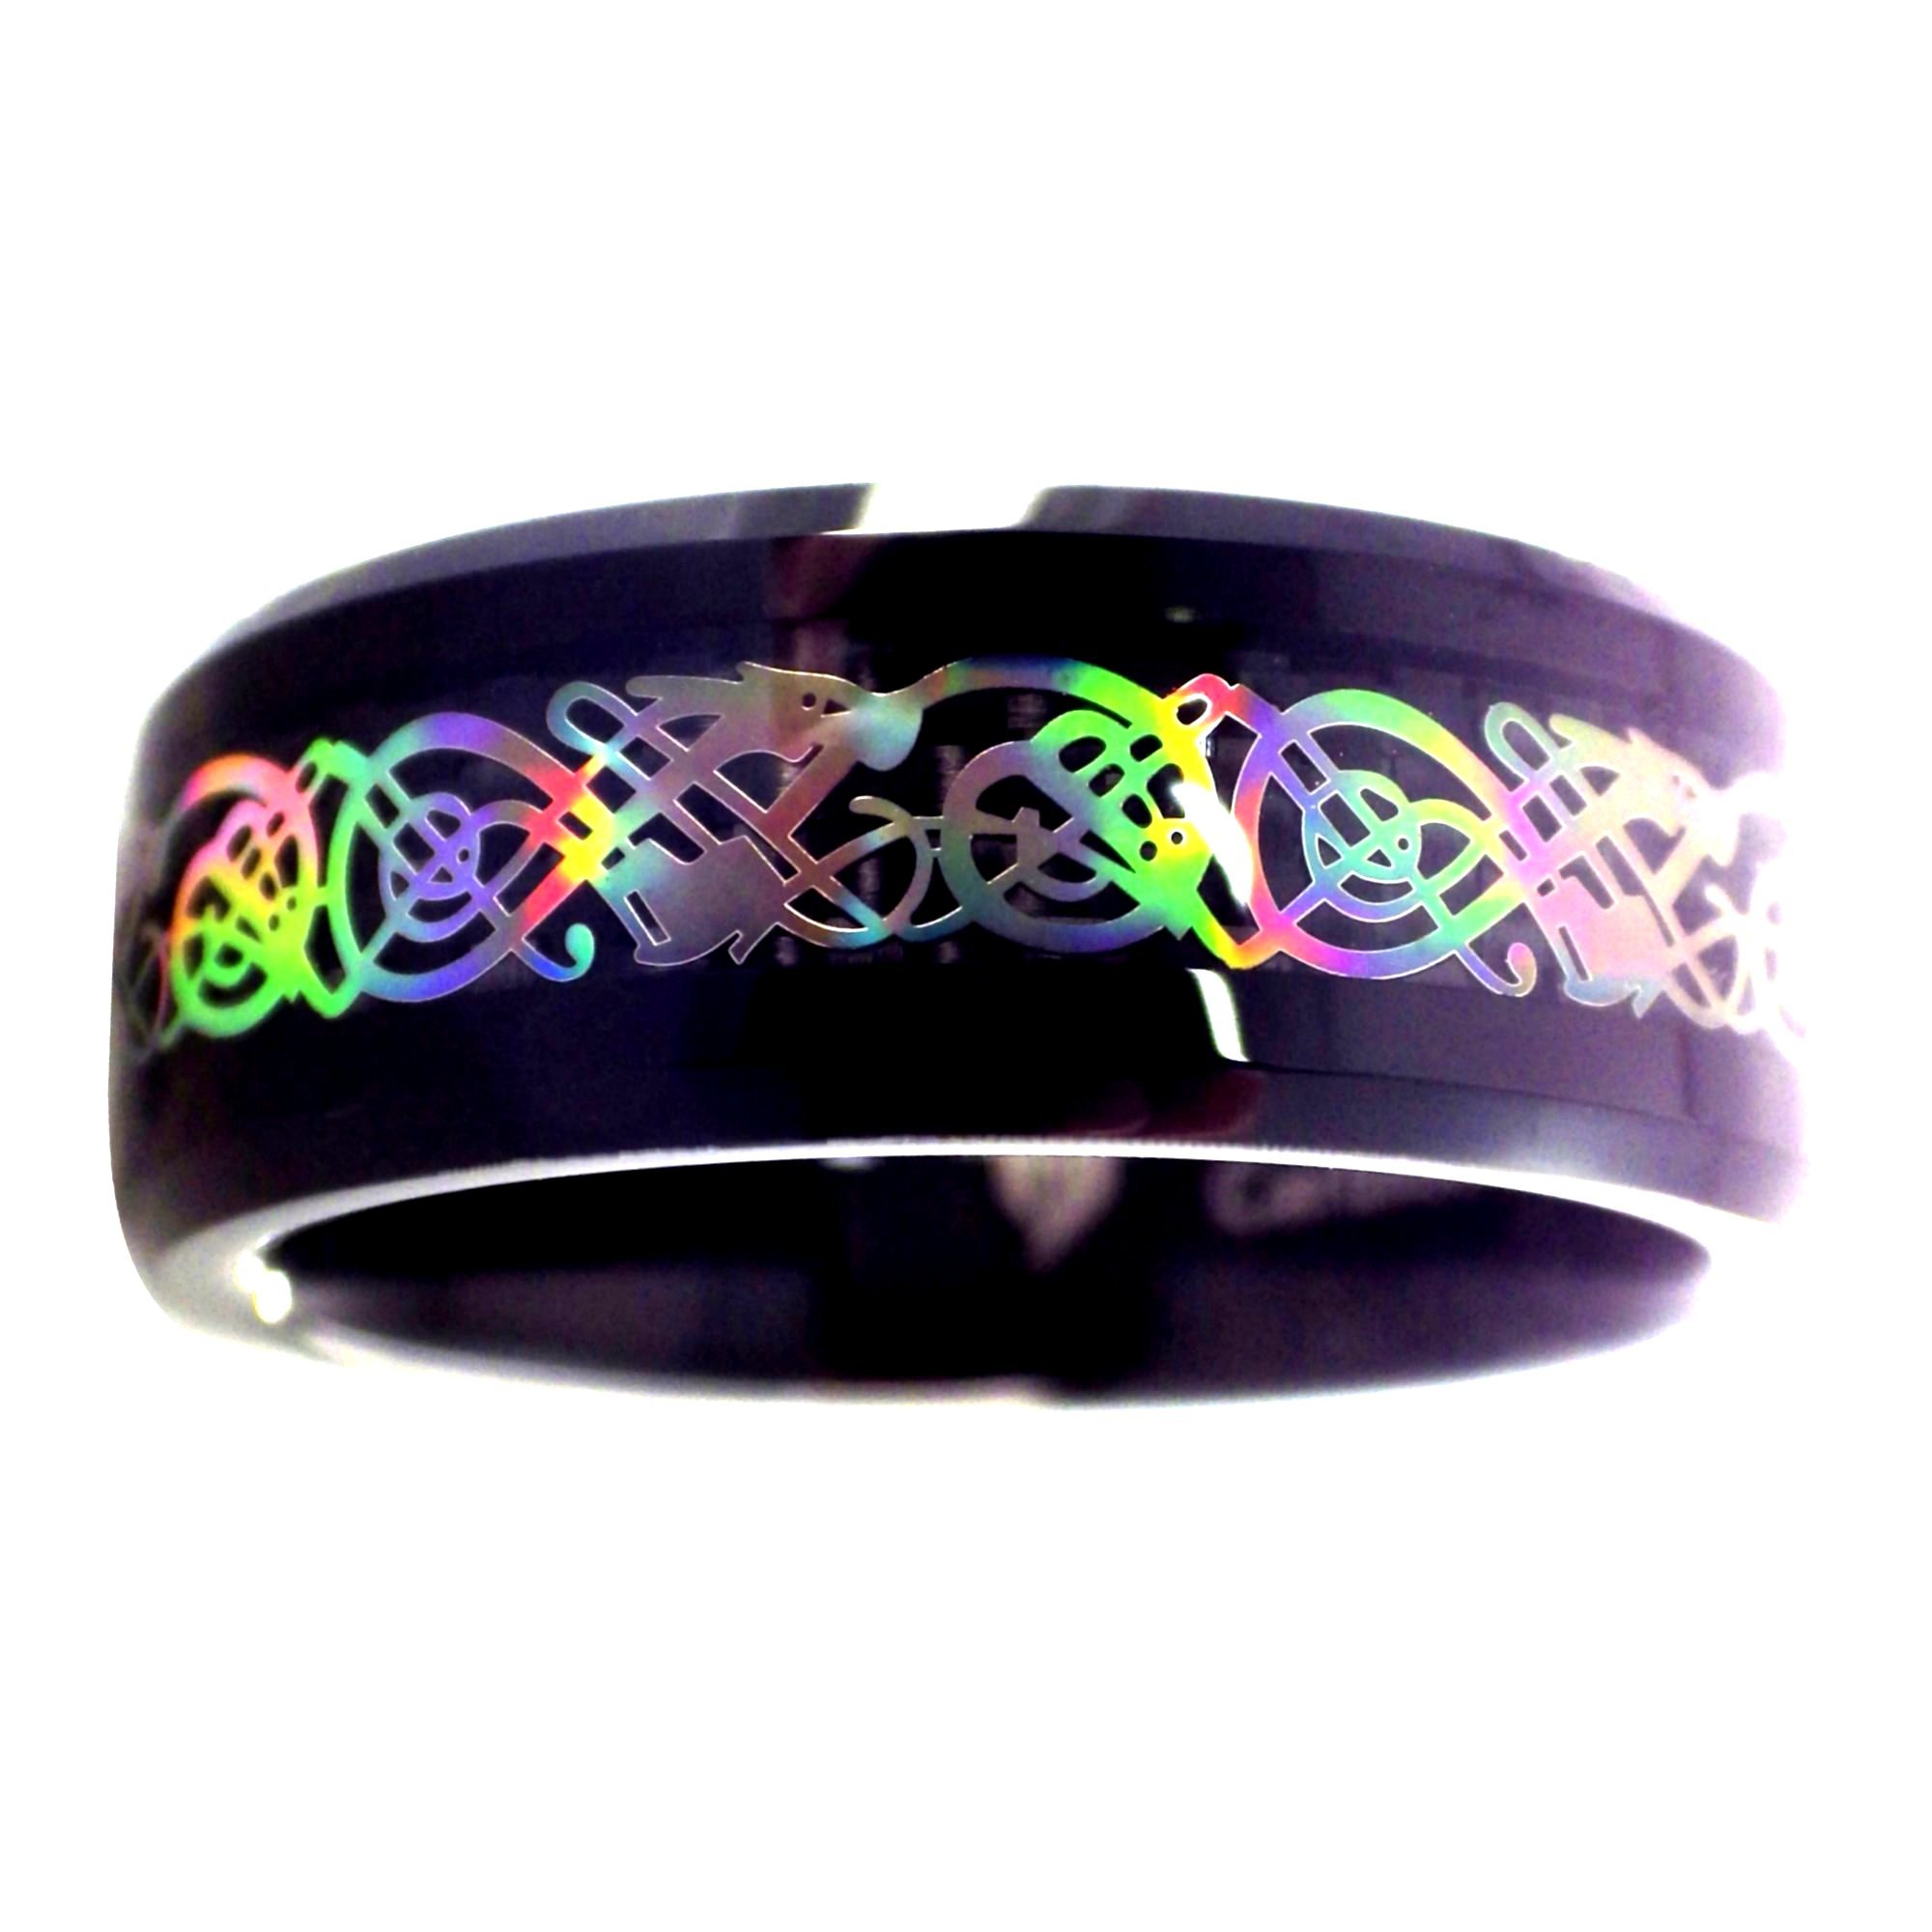 Fantasy Forge Jewelry Rainbow Hologram Style Celtic Dragon Black Tungsten Ring Size 6.5 by Fantasy Forge Jewelry (Image #1)